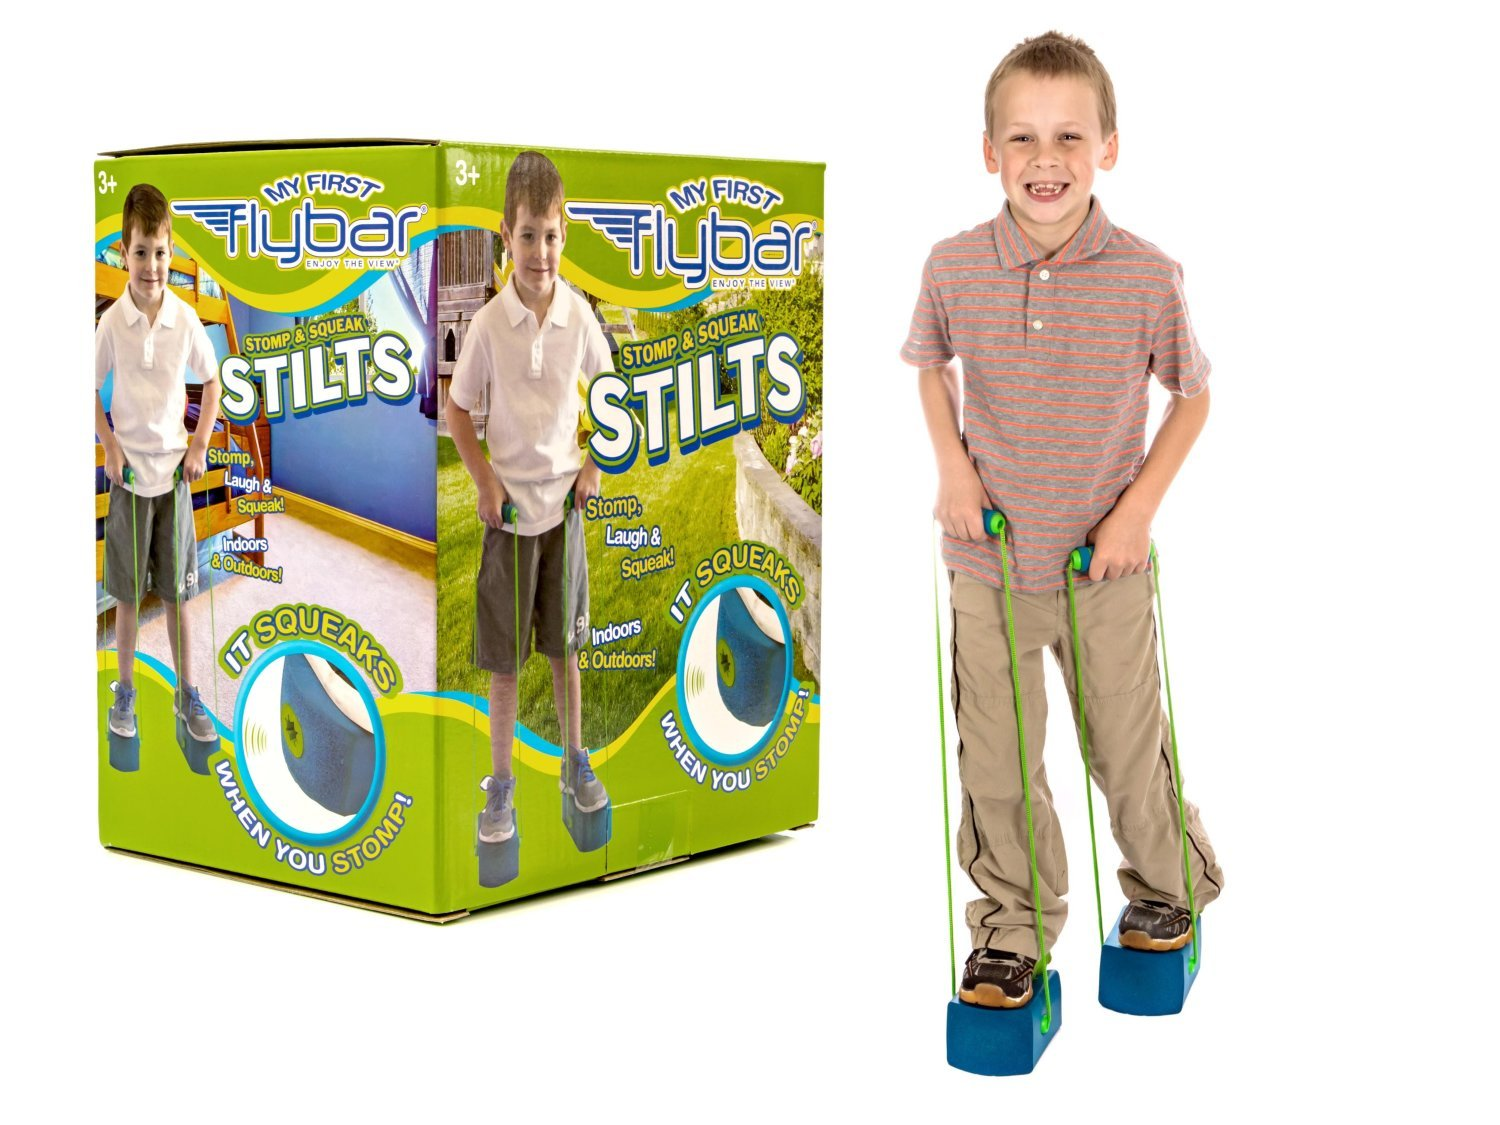 Flybar My First Kids Stilts for Ages 3 Up Soft and Safe Foam Pogo Steppers Squeak with Each Step – Foam Hand Grips with Sturdy Rope Handles